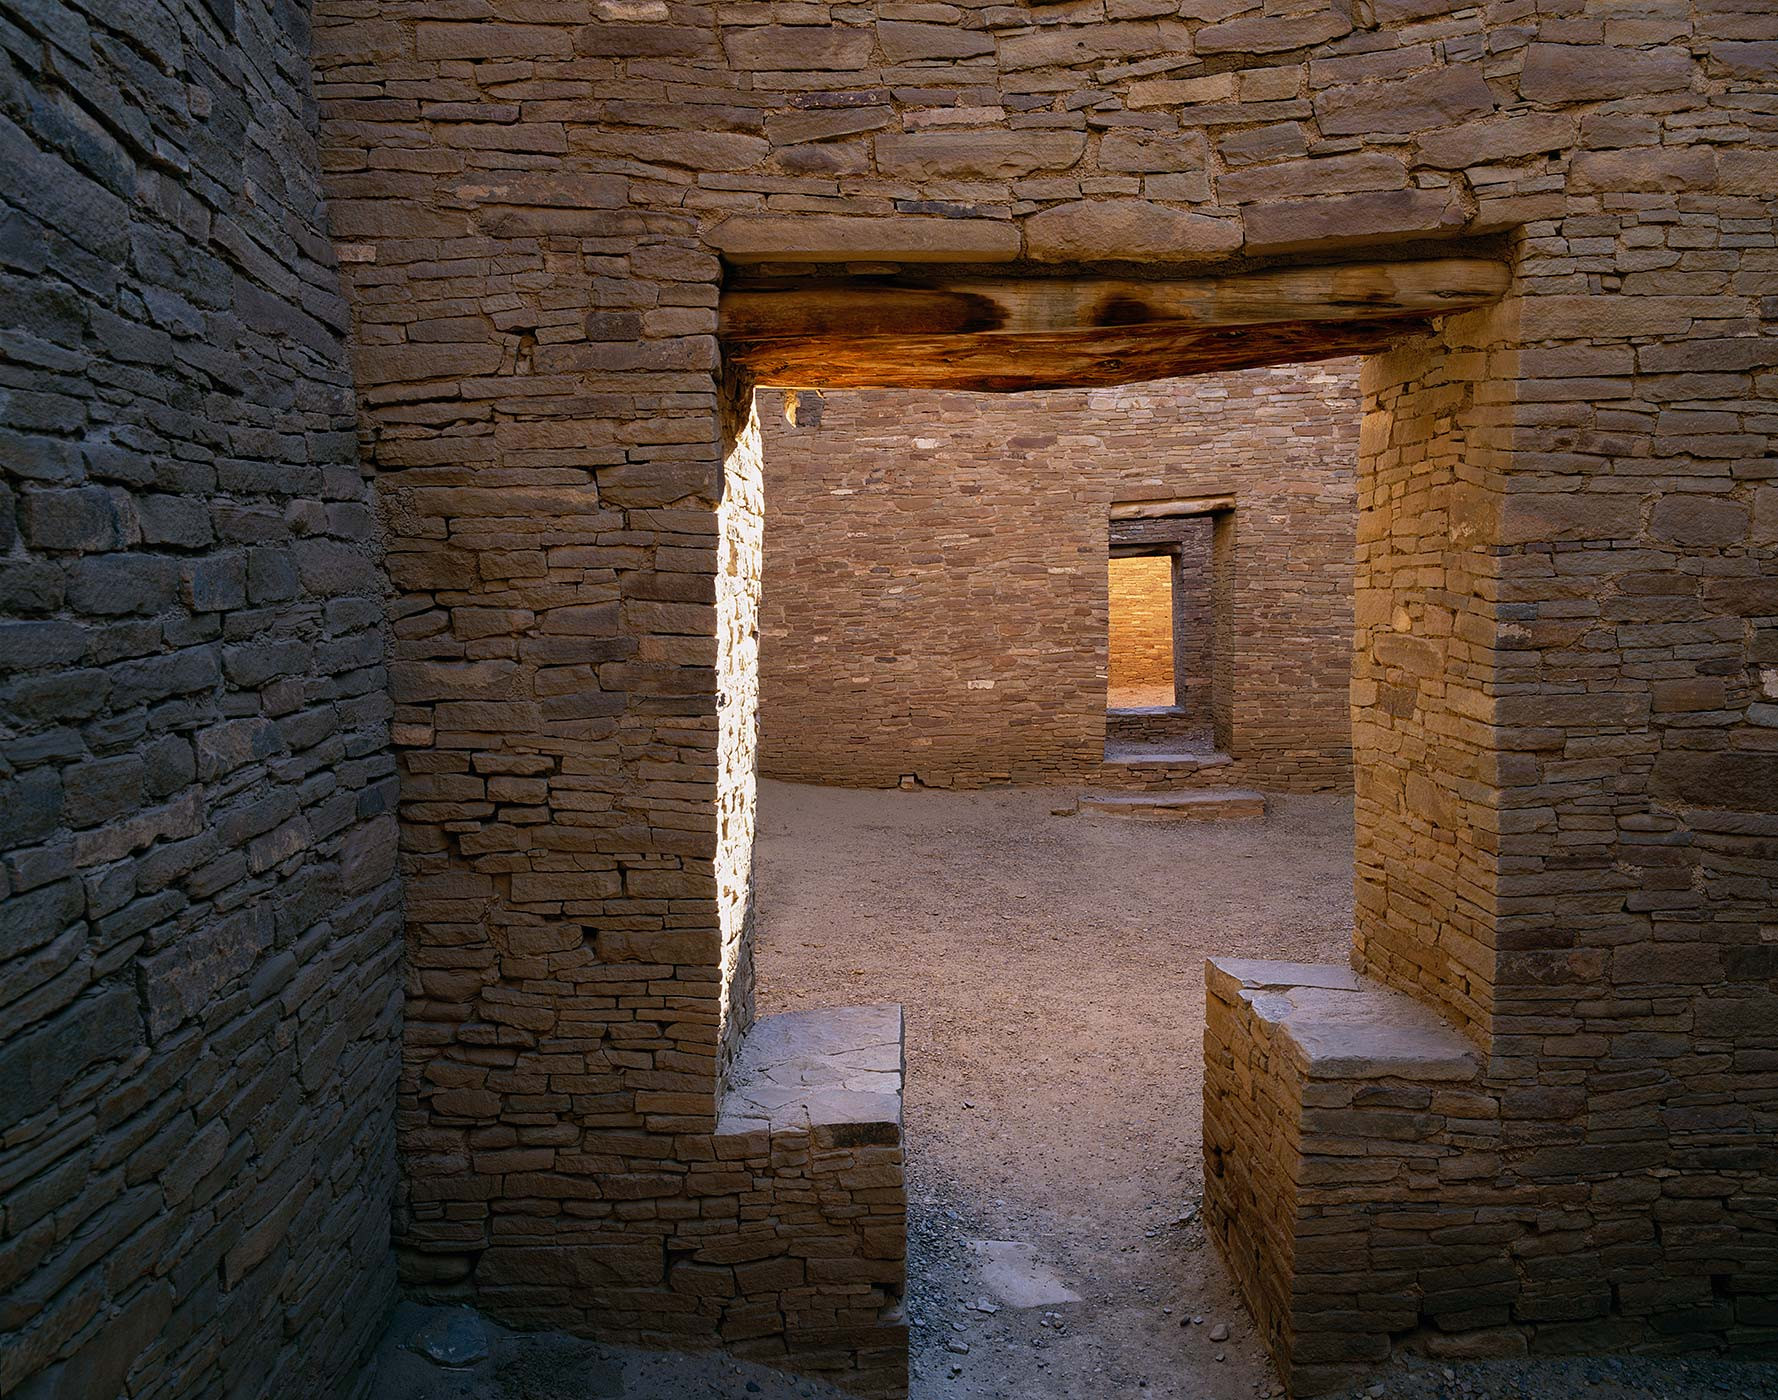 507 Pueblo Bonito Doorways, Chaco Culture National Park, New Mexico